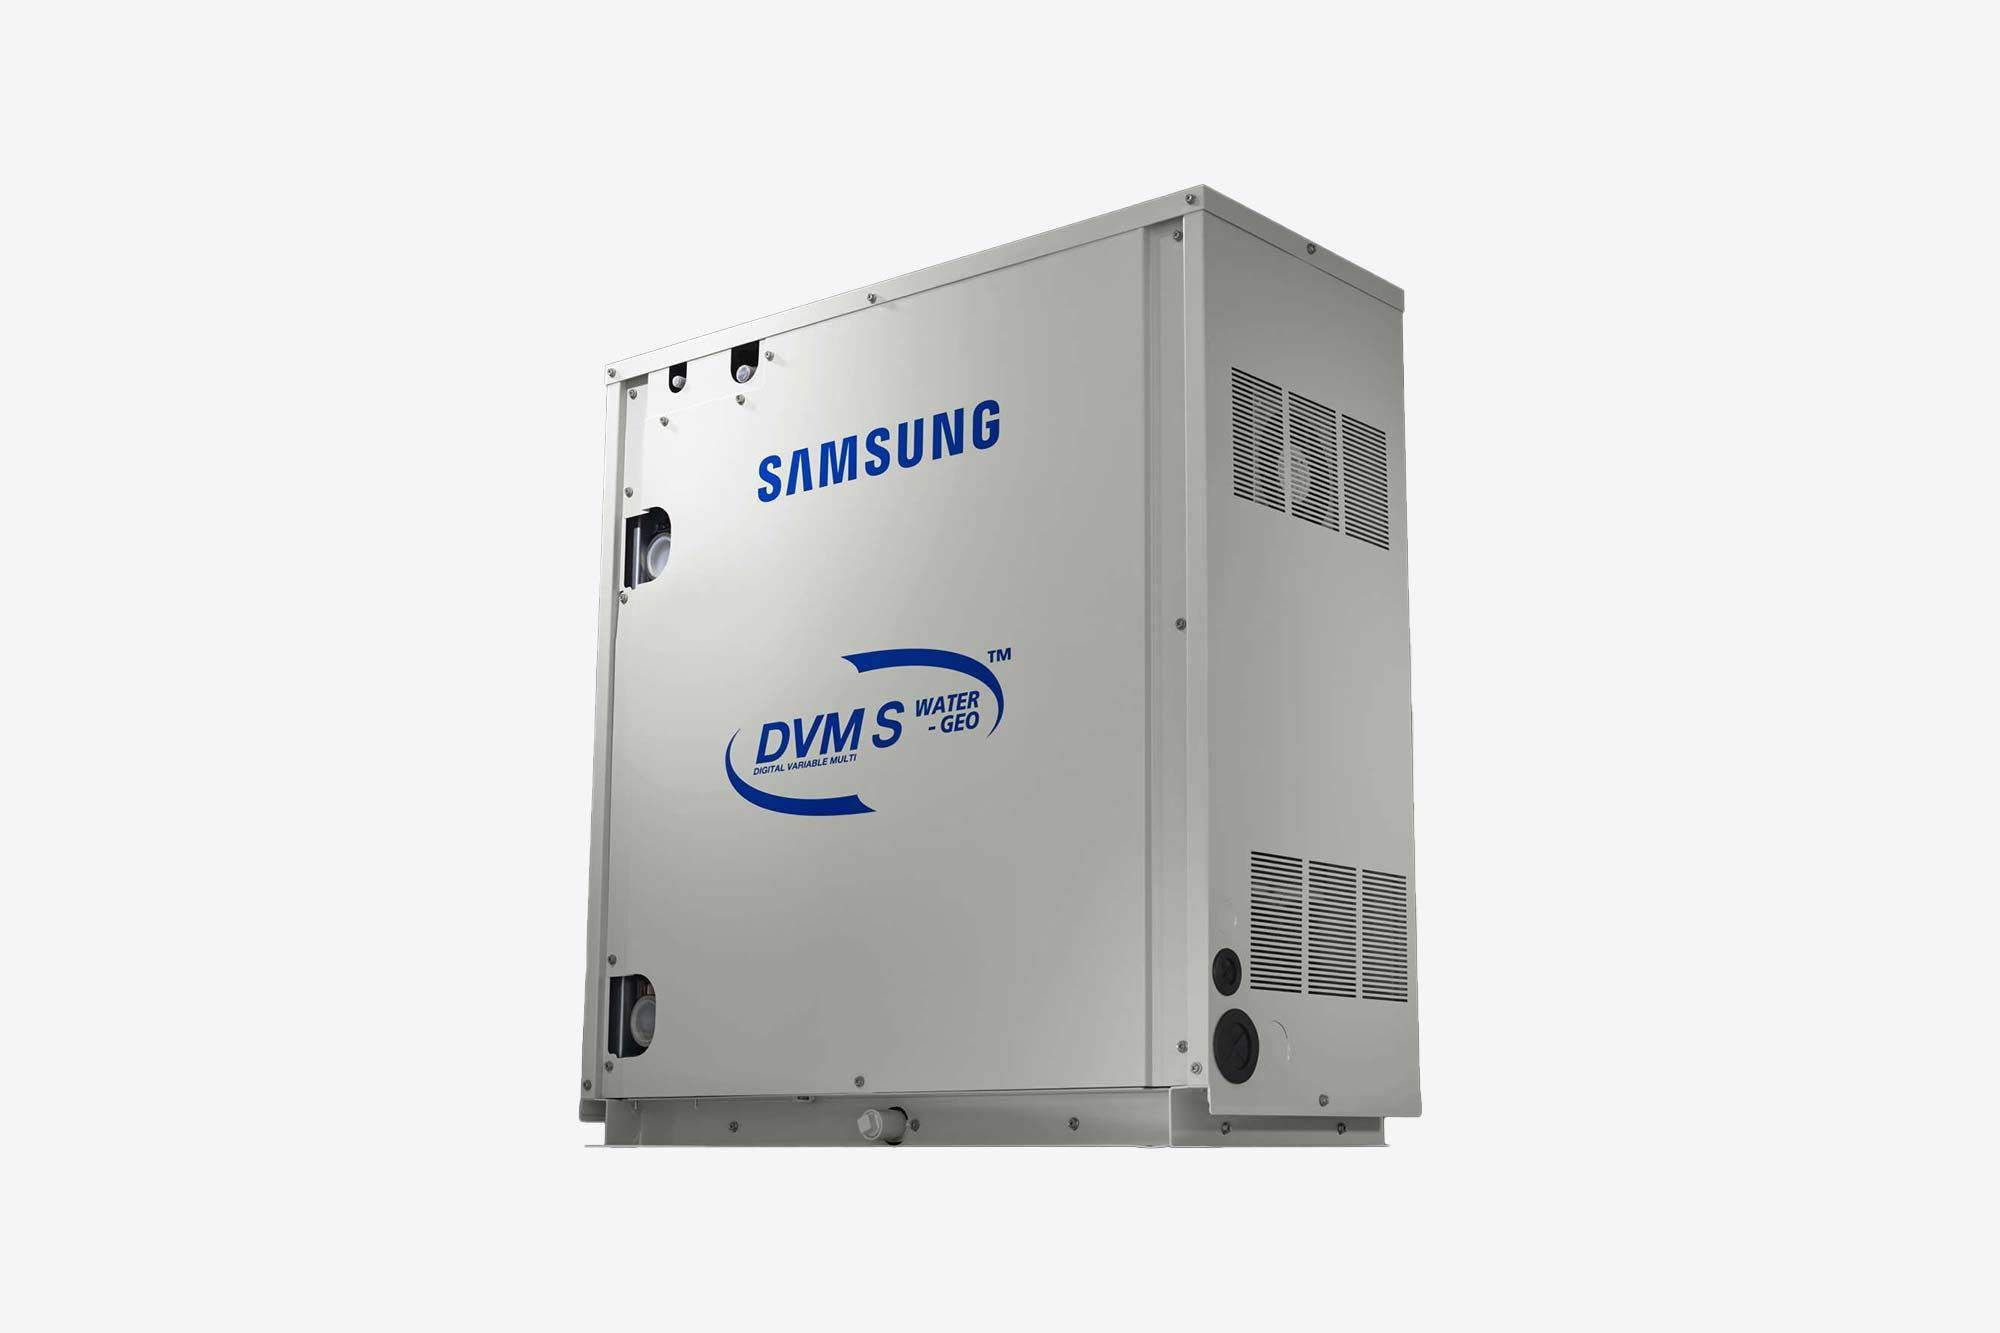 Samsung-Commercial-Dvm-S-Water